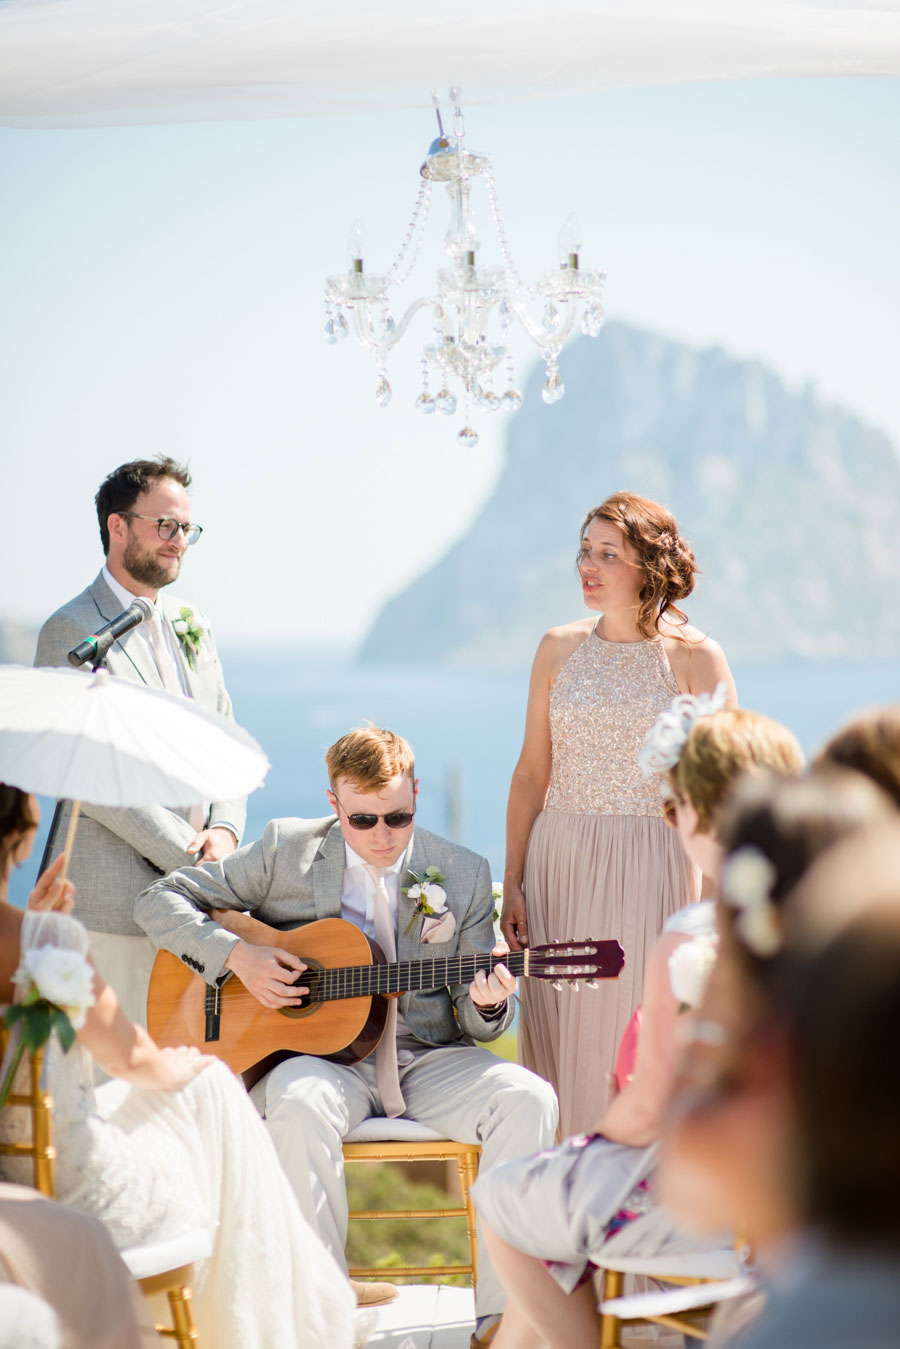 nicola-and-jimmy-es-vedra-ibiza-gypsy-westwood-photography-30